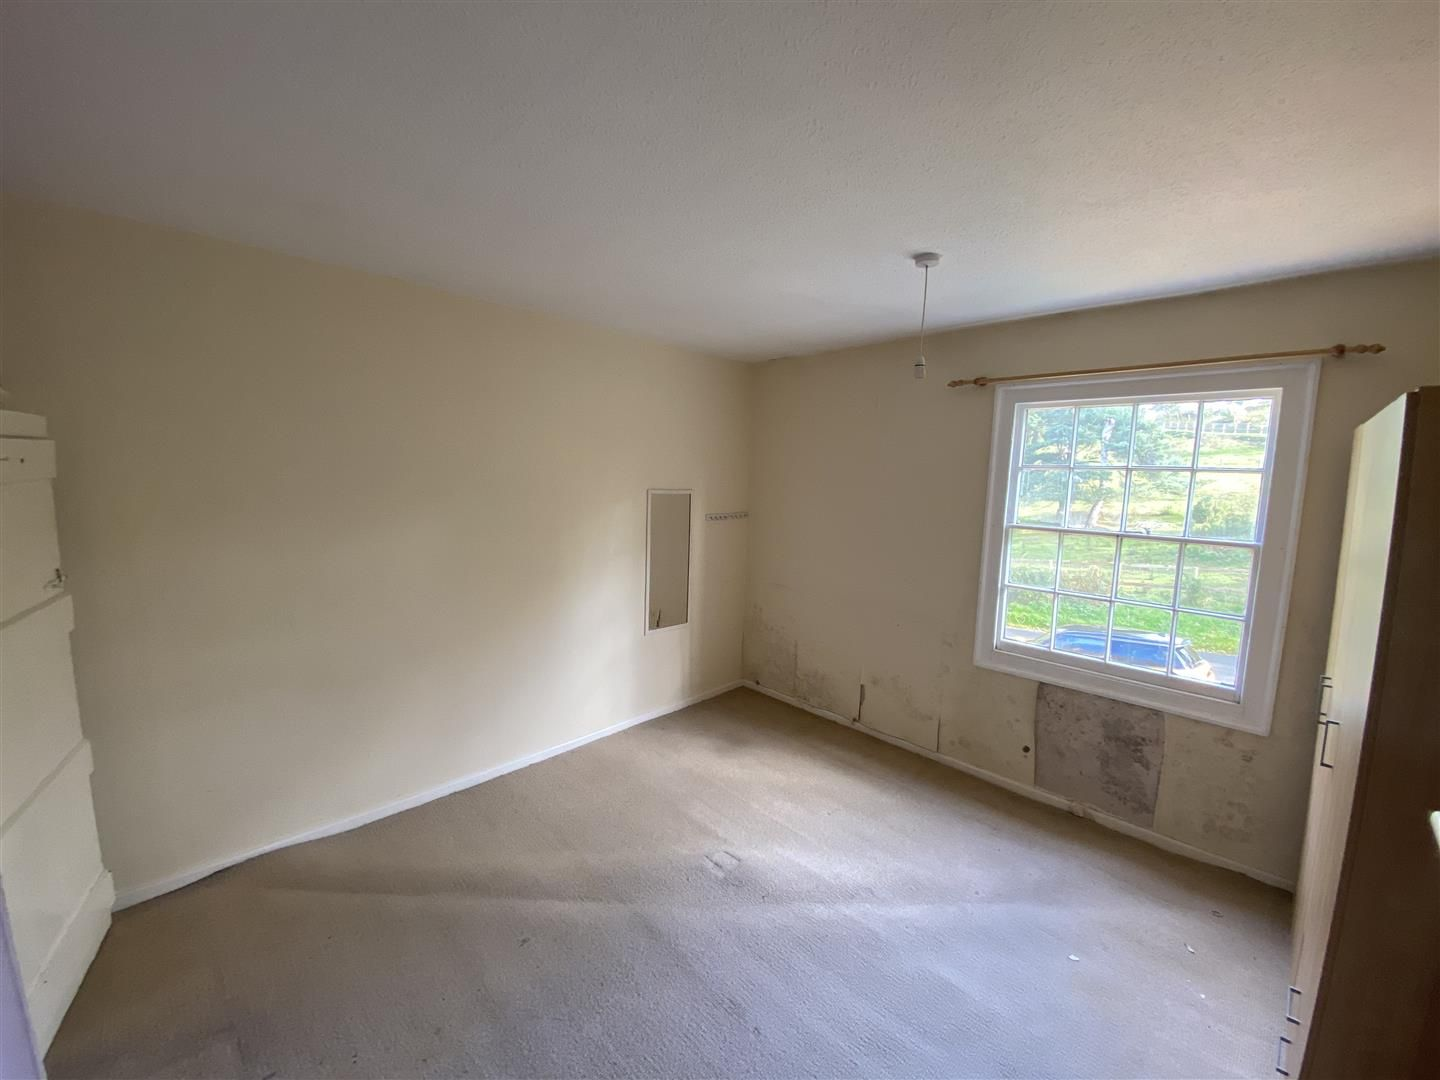 2 bed end-of-terrace for sale in Kinver 12